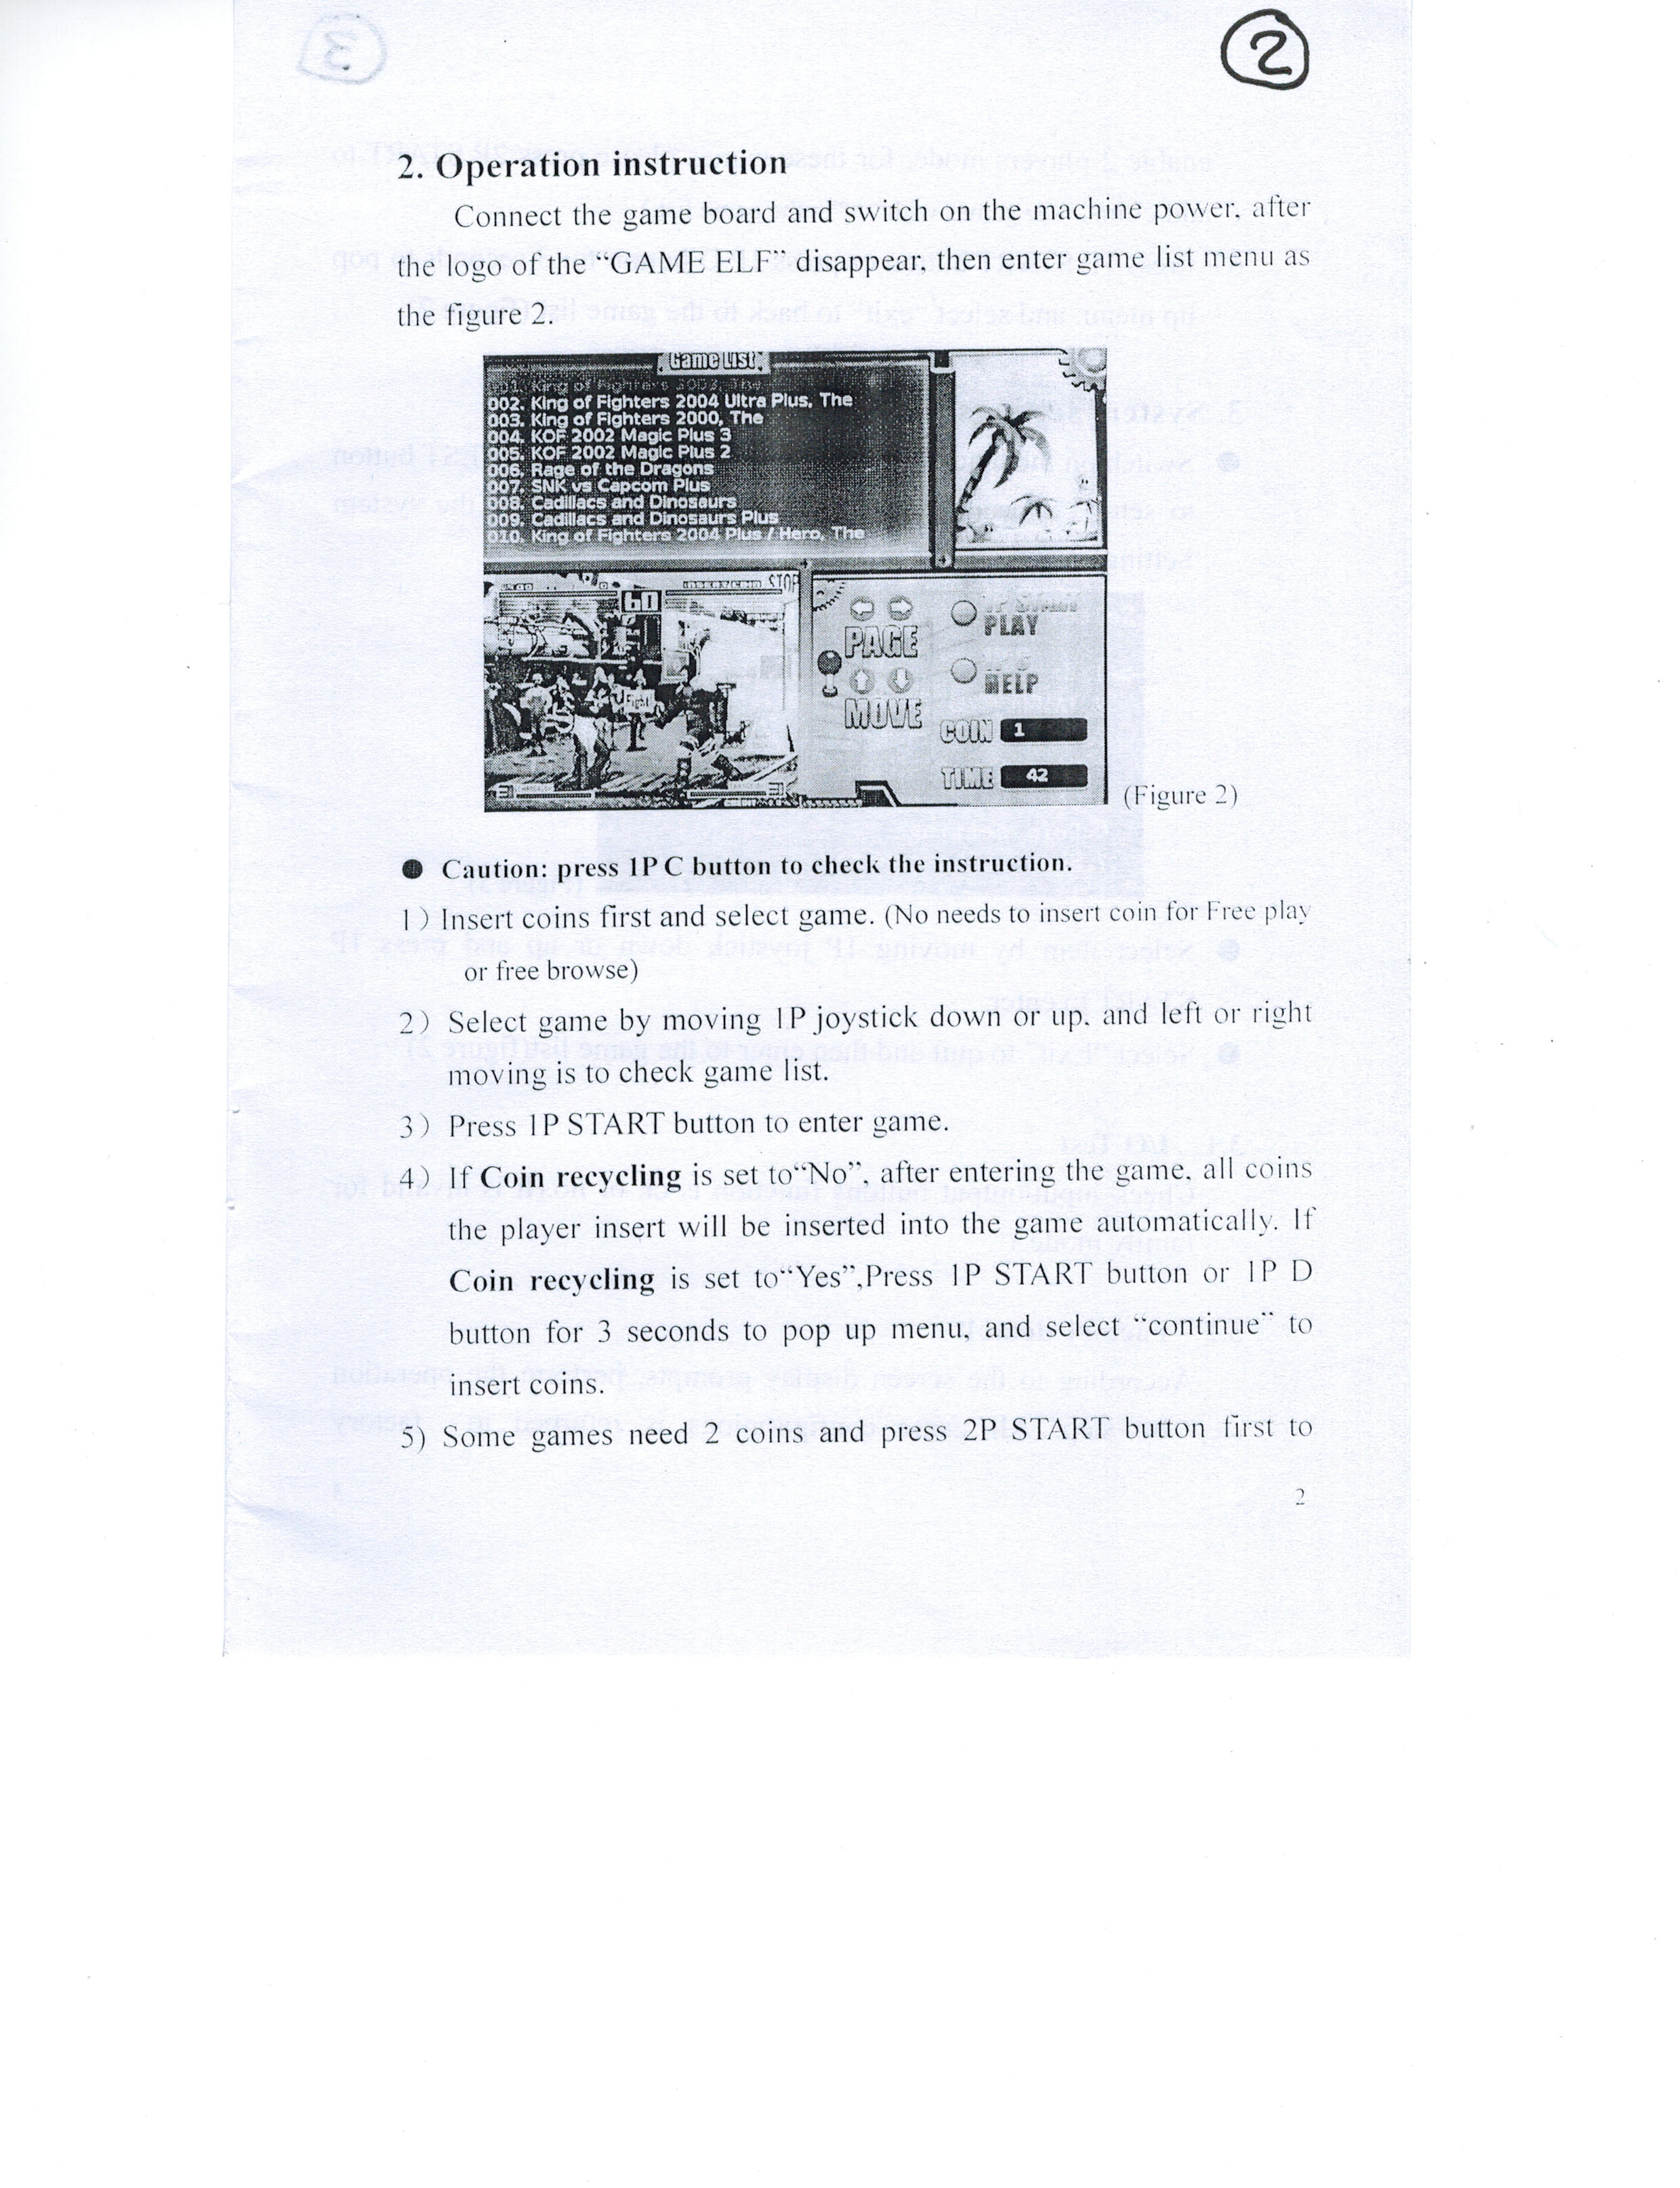 game elf wiring diagram game image wiring diagram 621 in 1 game elf multicade system games list and manual on game elf wiring diagram